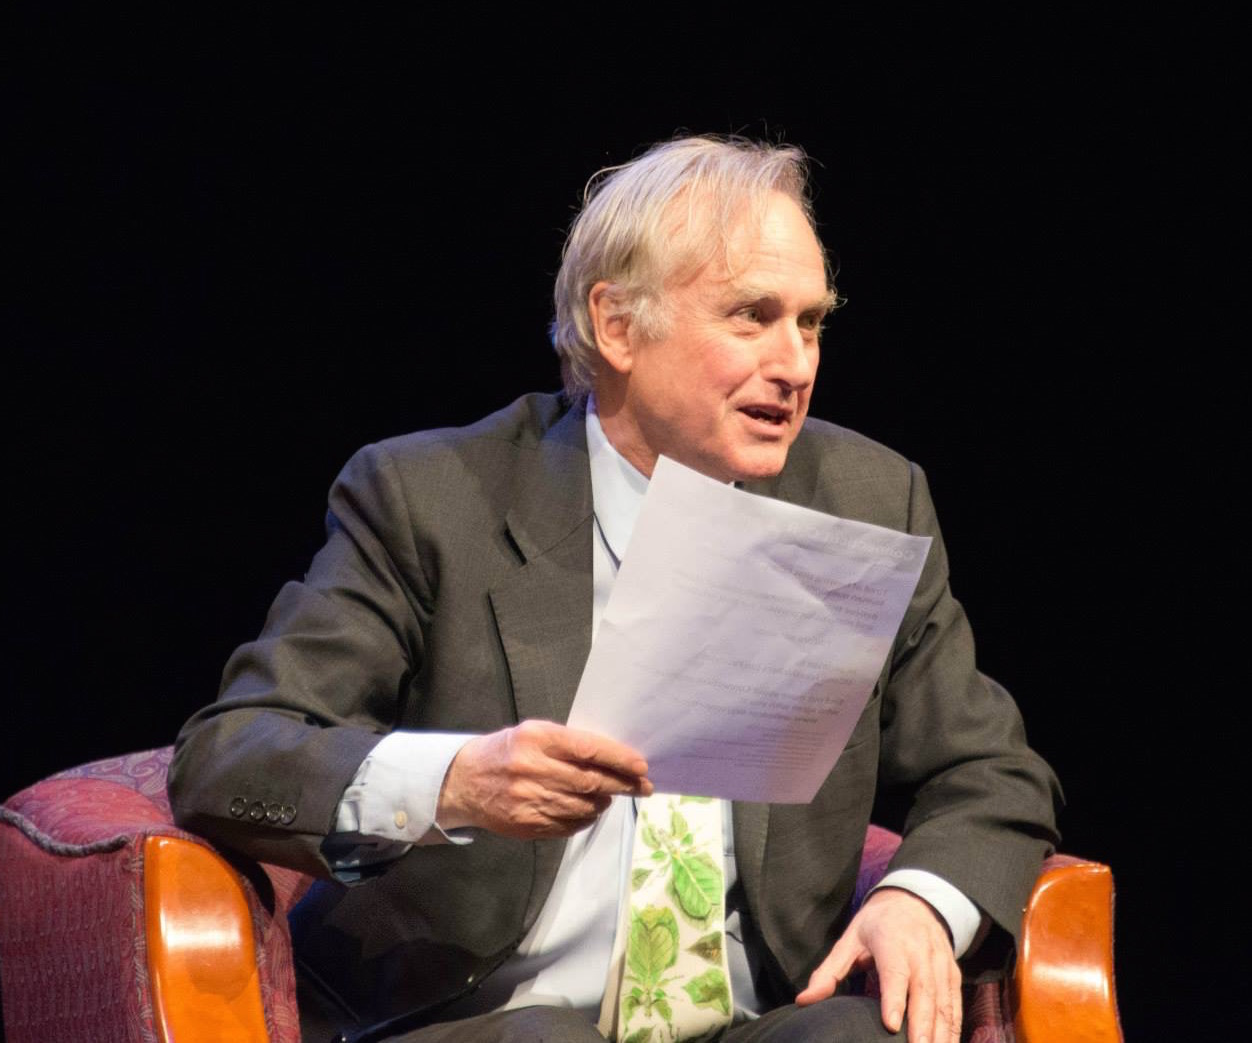 Richard Dawkins visit